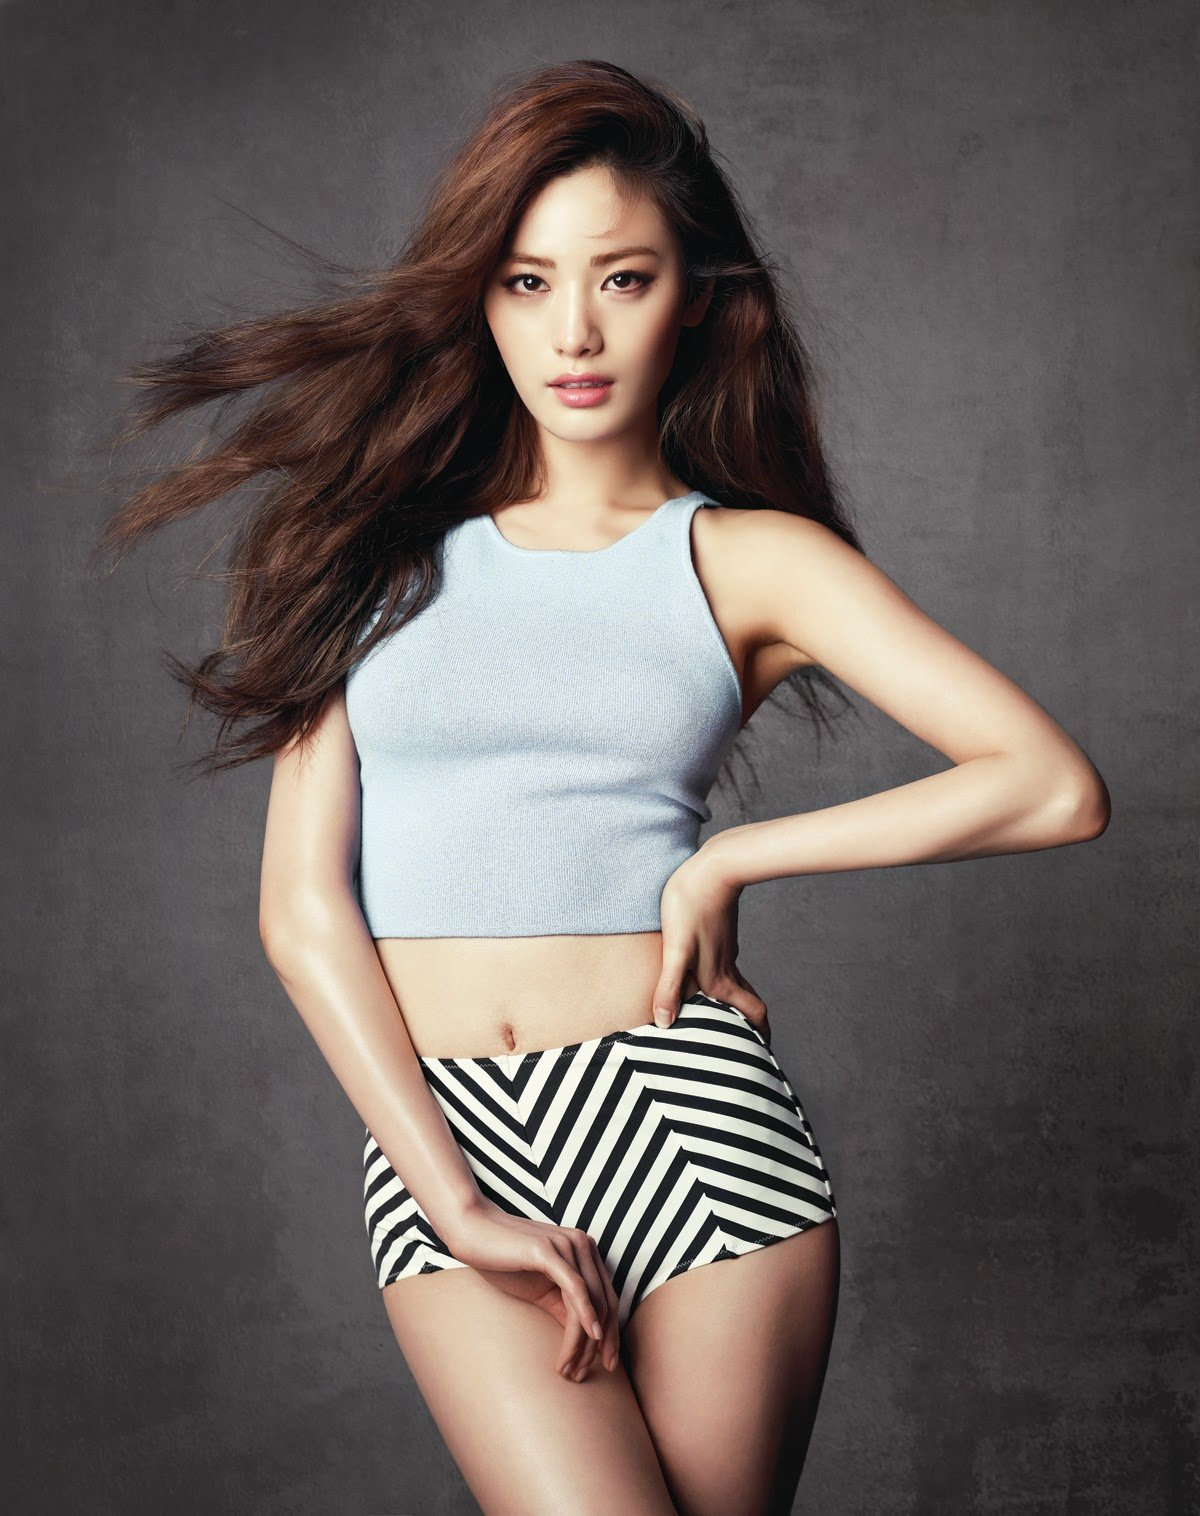 Nana alluring eye candy